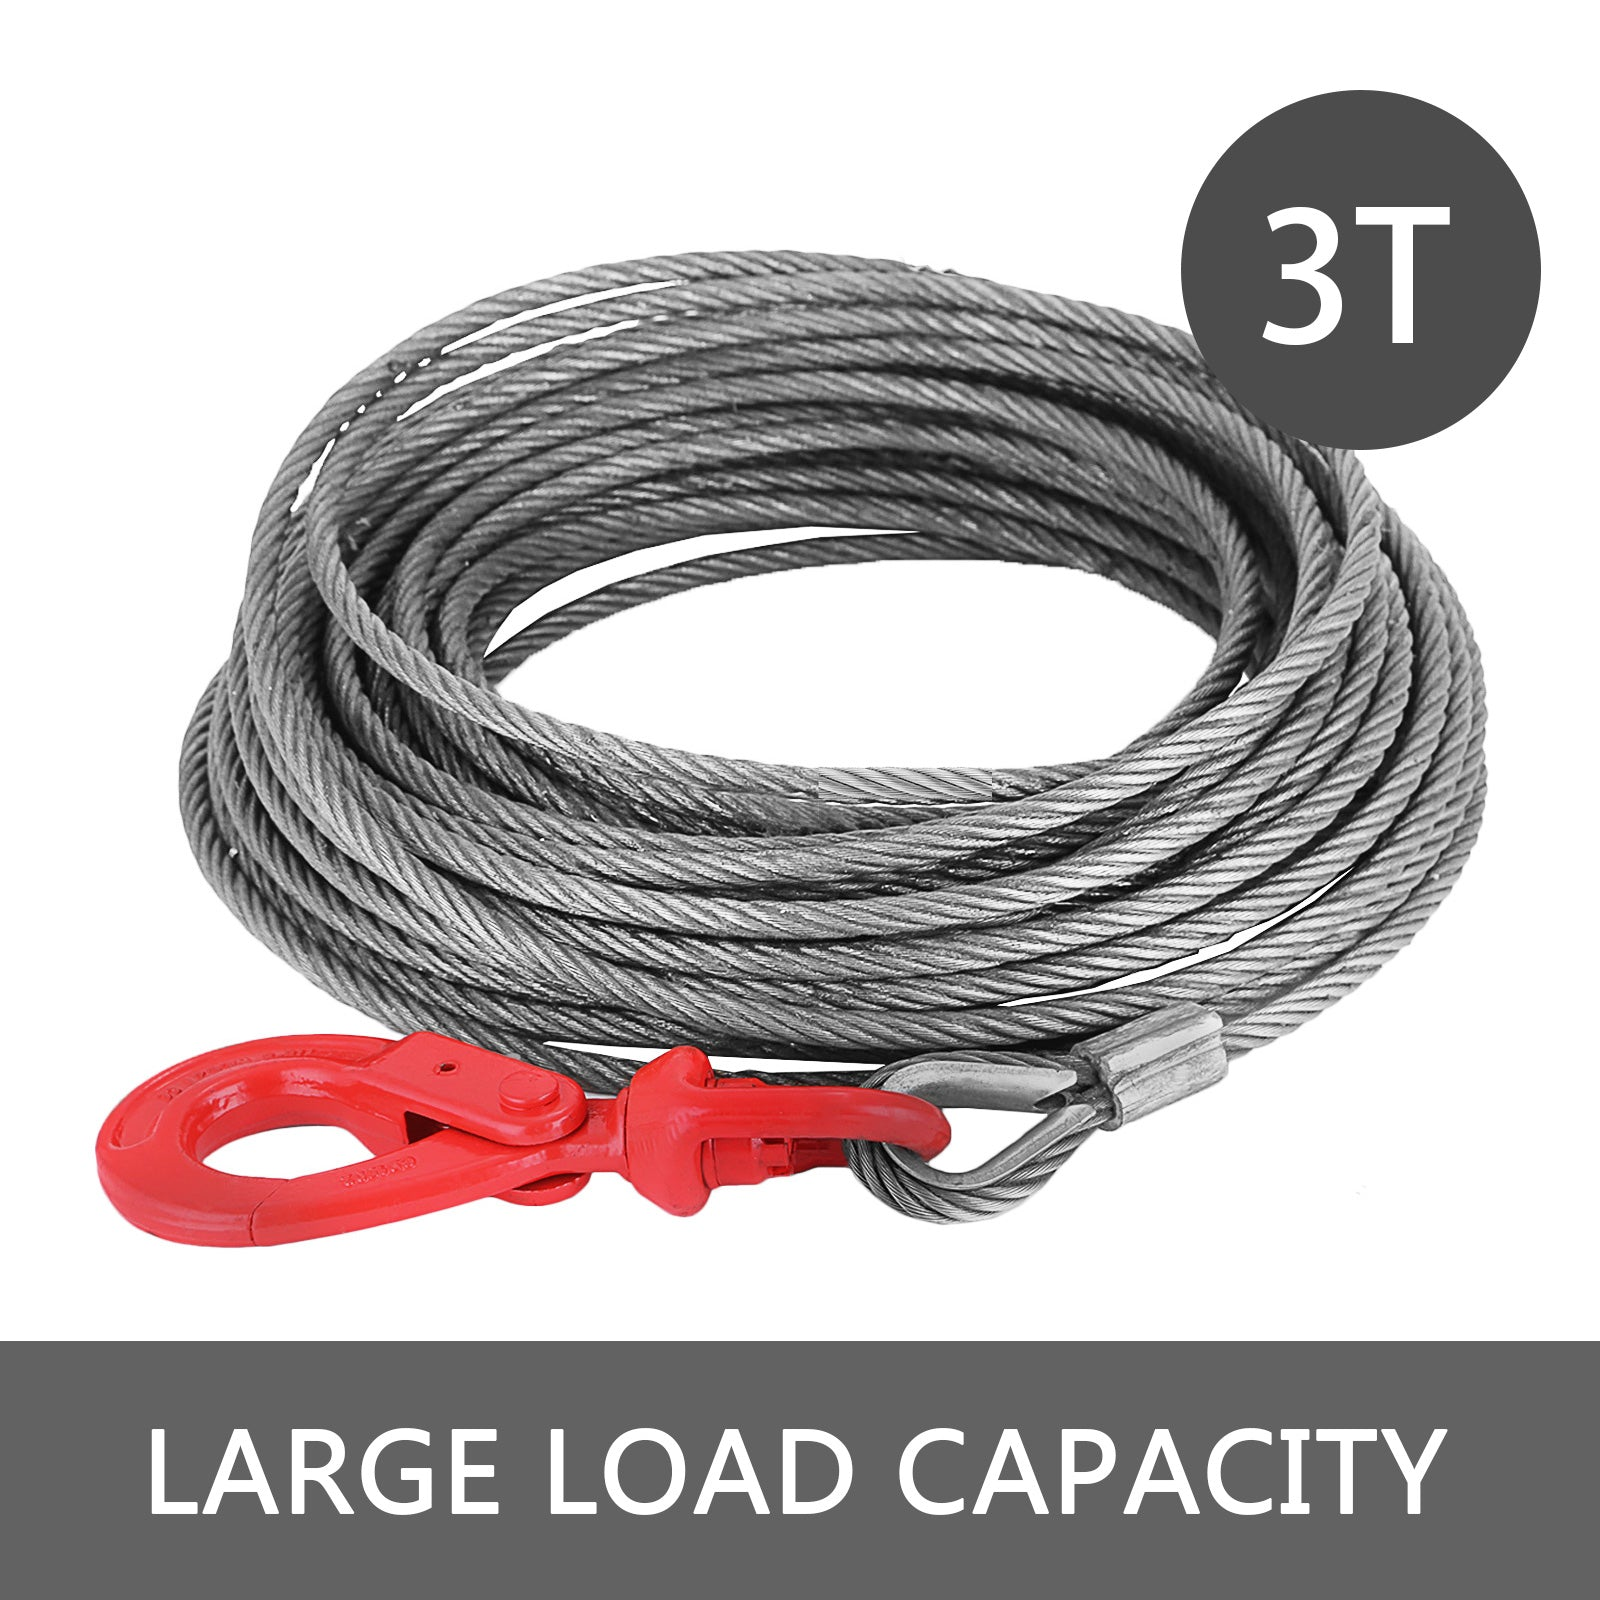 "Fiber Core Winch Cable With Self Locking Swivel Hook 1/2"" X 150' Tow Hoist"